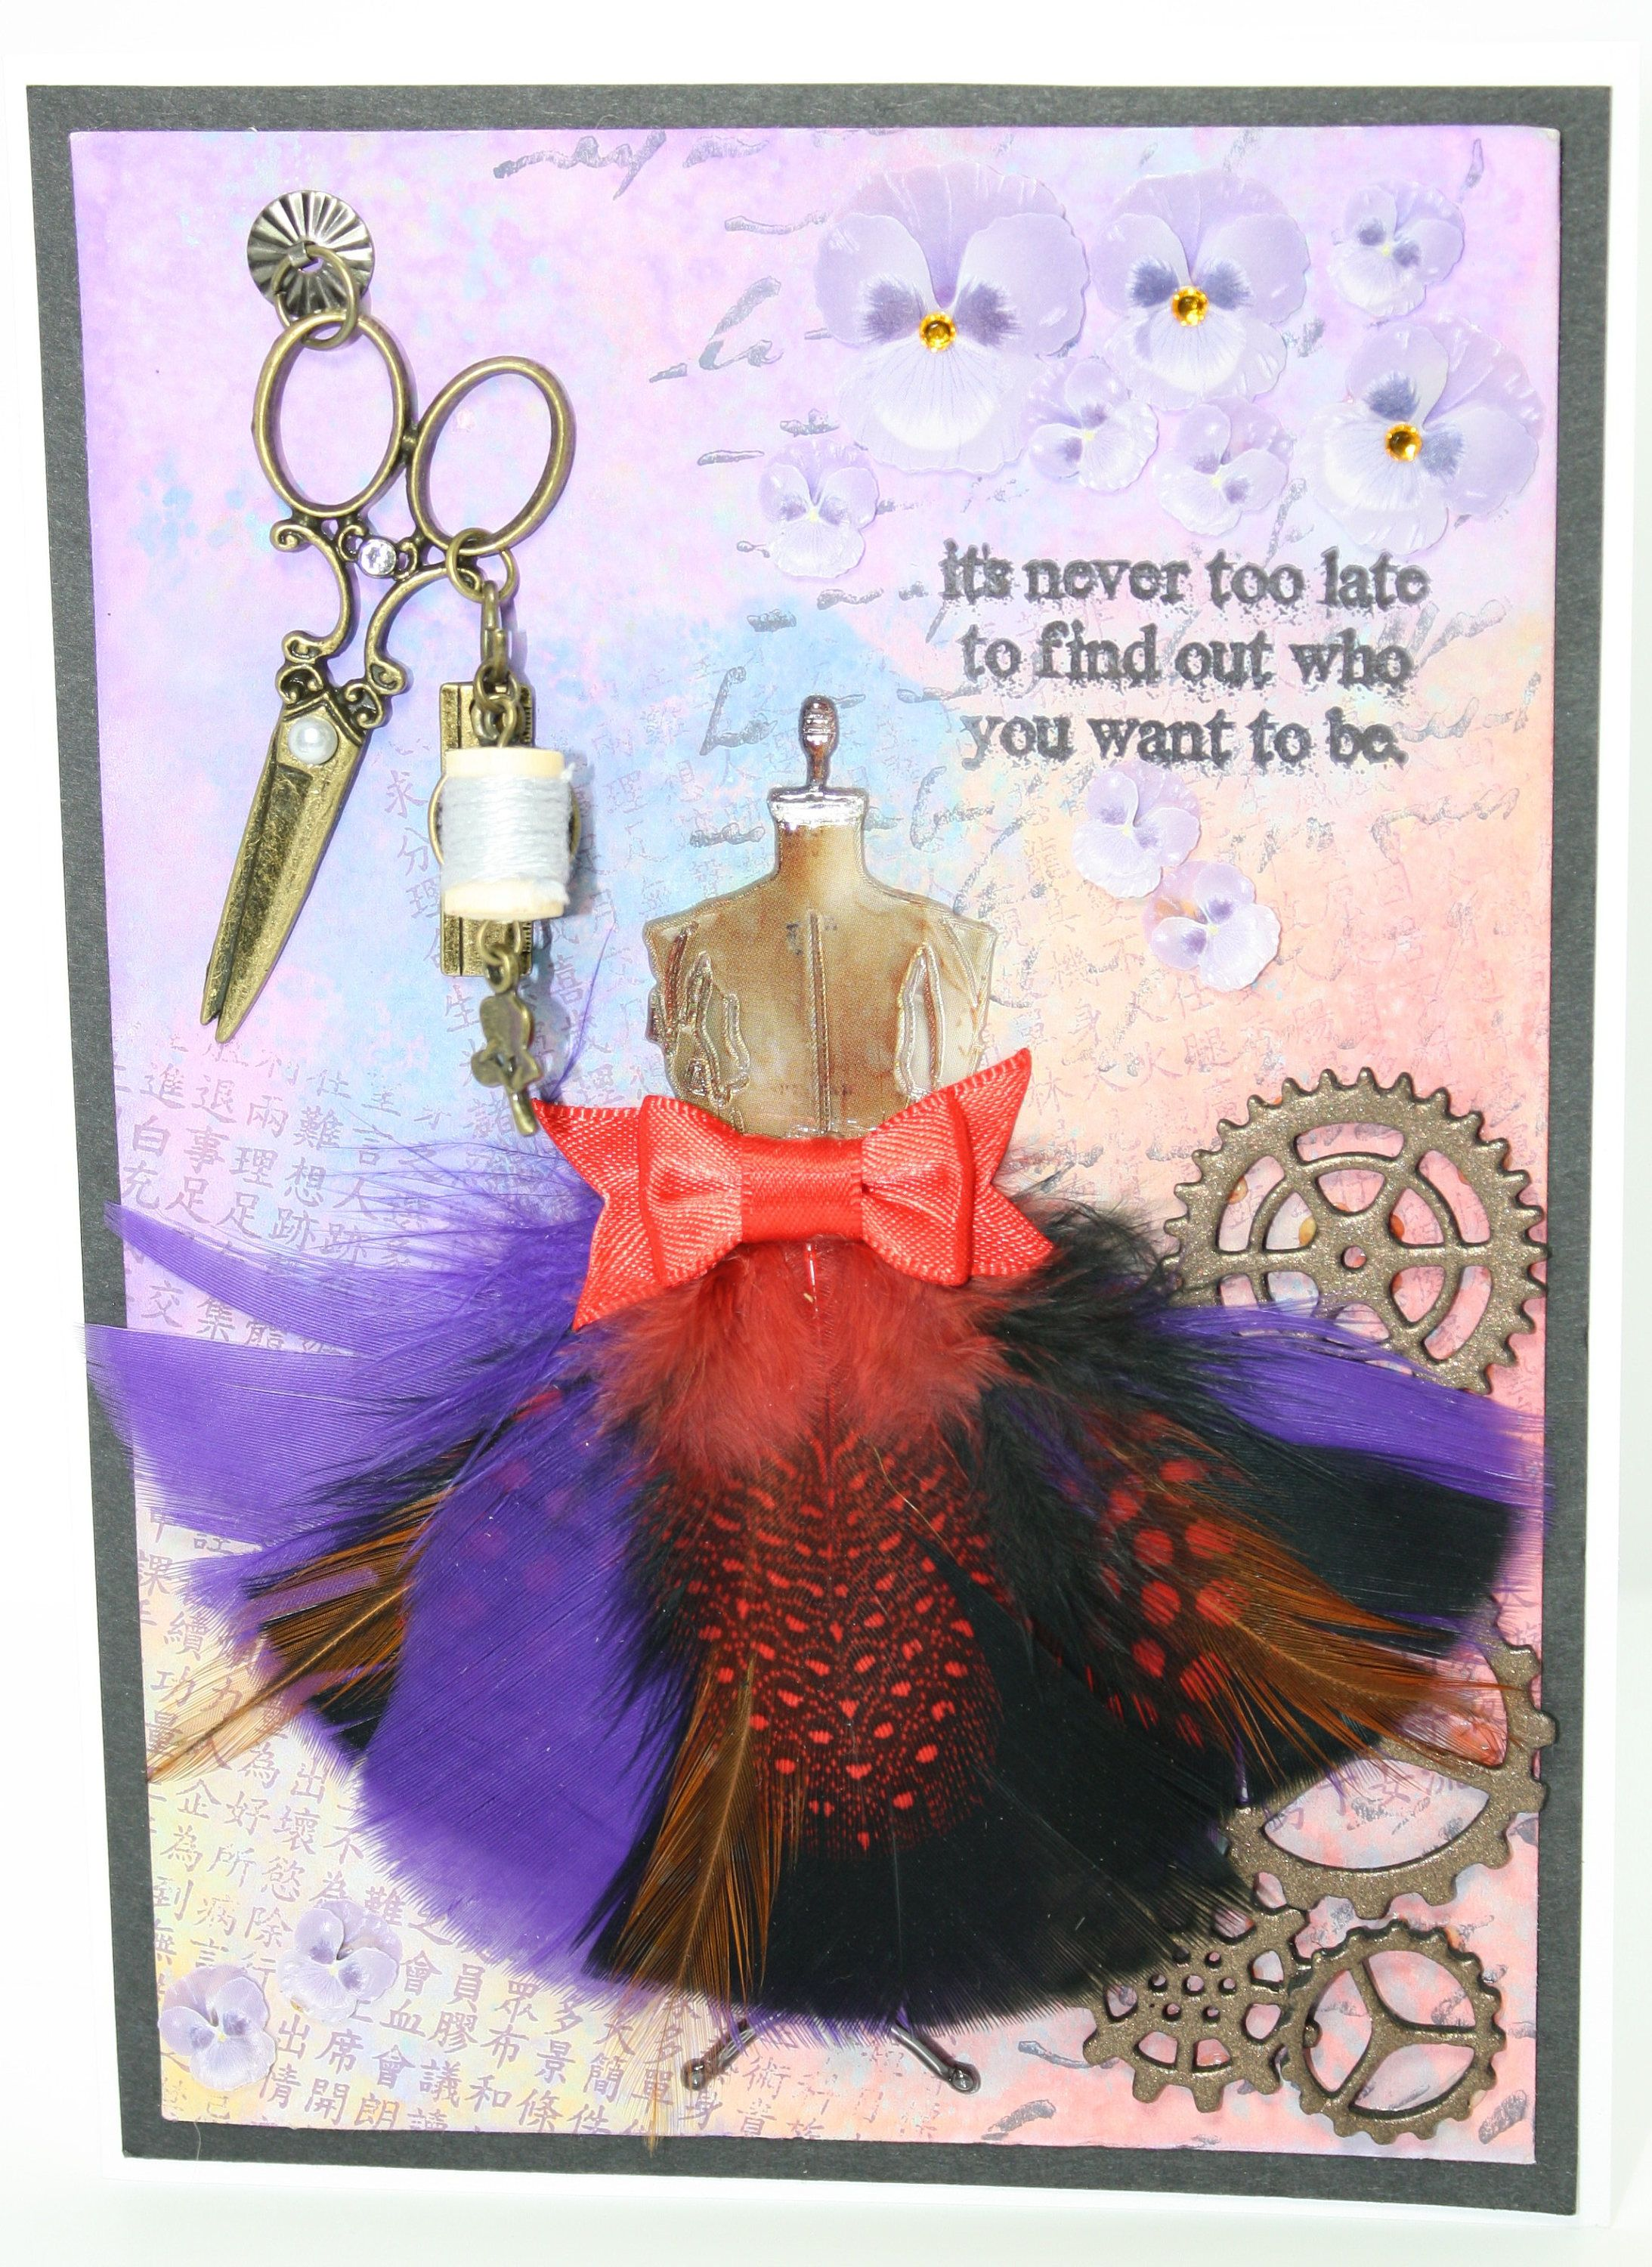 A Wonderful Greeting Card For An Art Lover Steampunk With Vintage